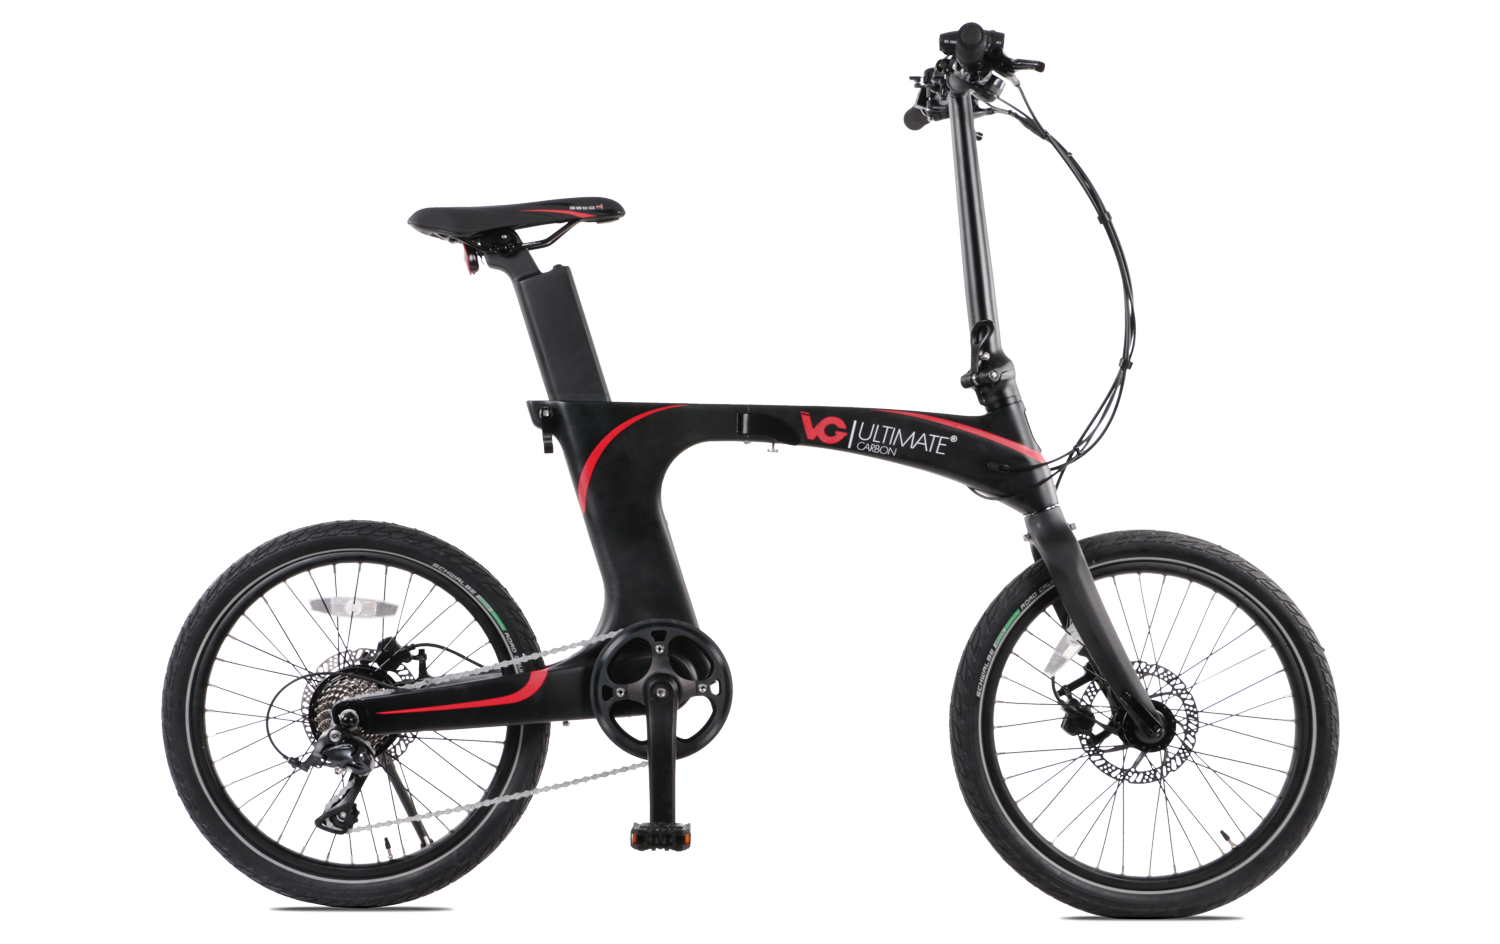 https://w8w5m3f8.stackpathcdn.com/18343/velo-electrique-pliant-ultimate-carbon-378wh.jpg